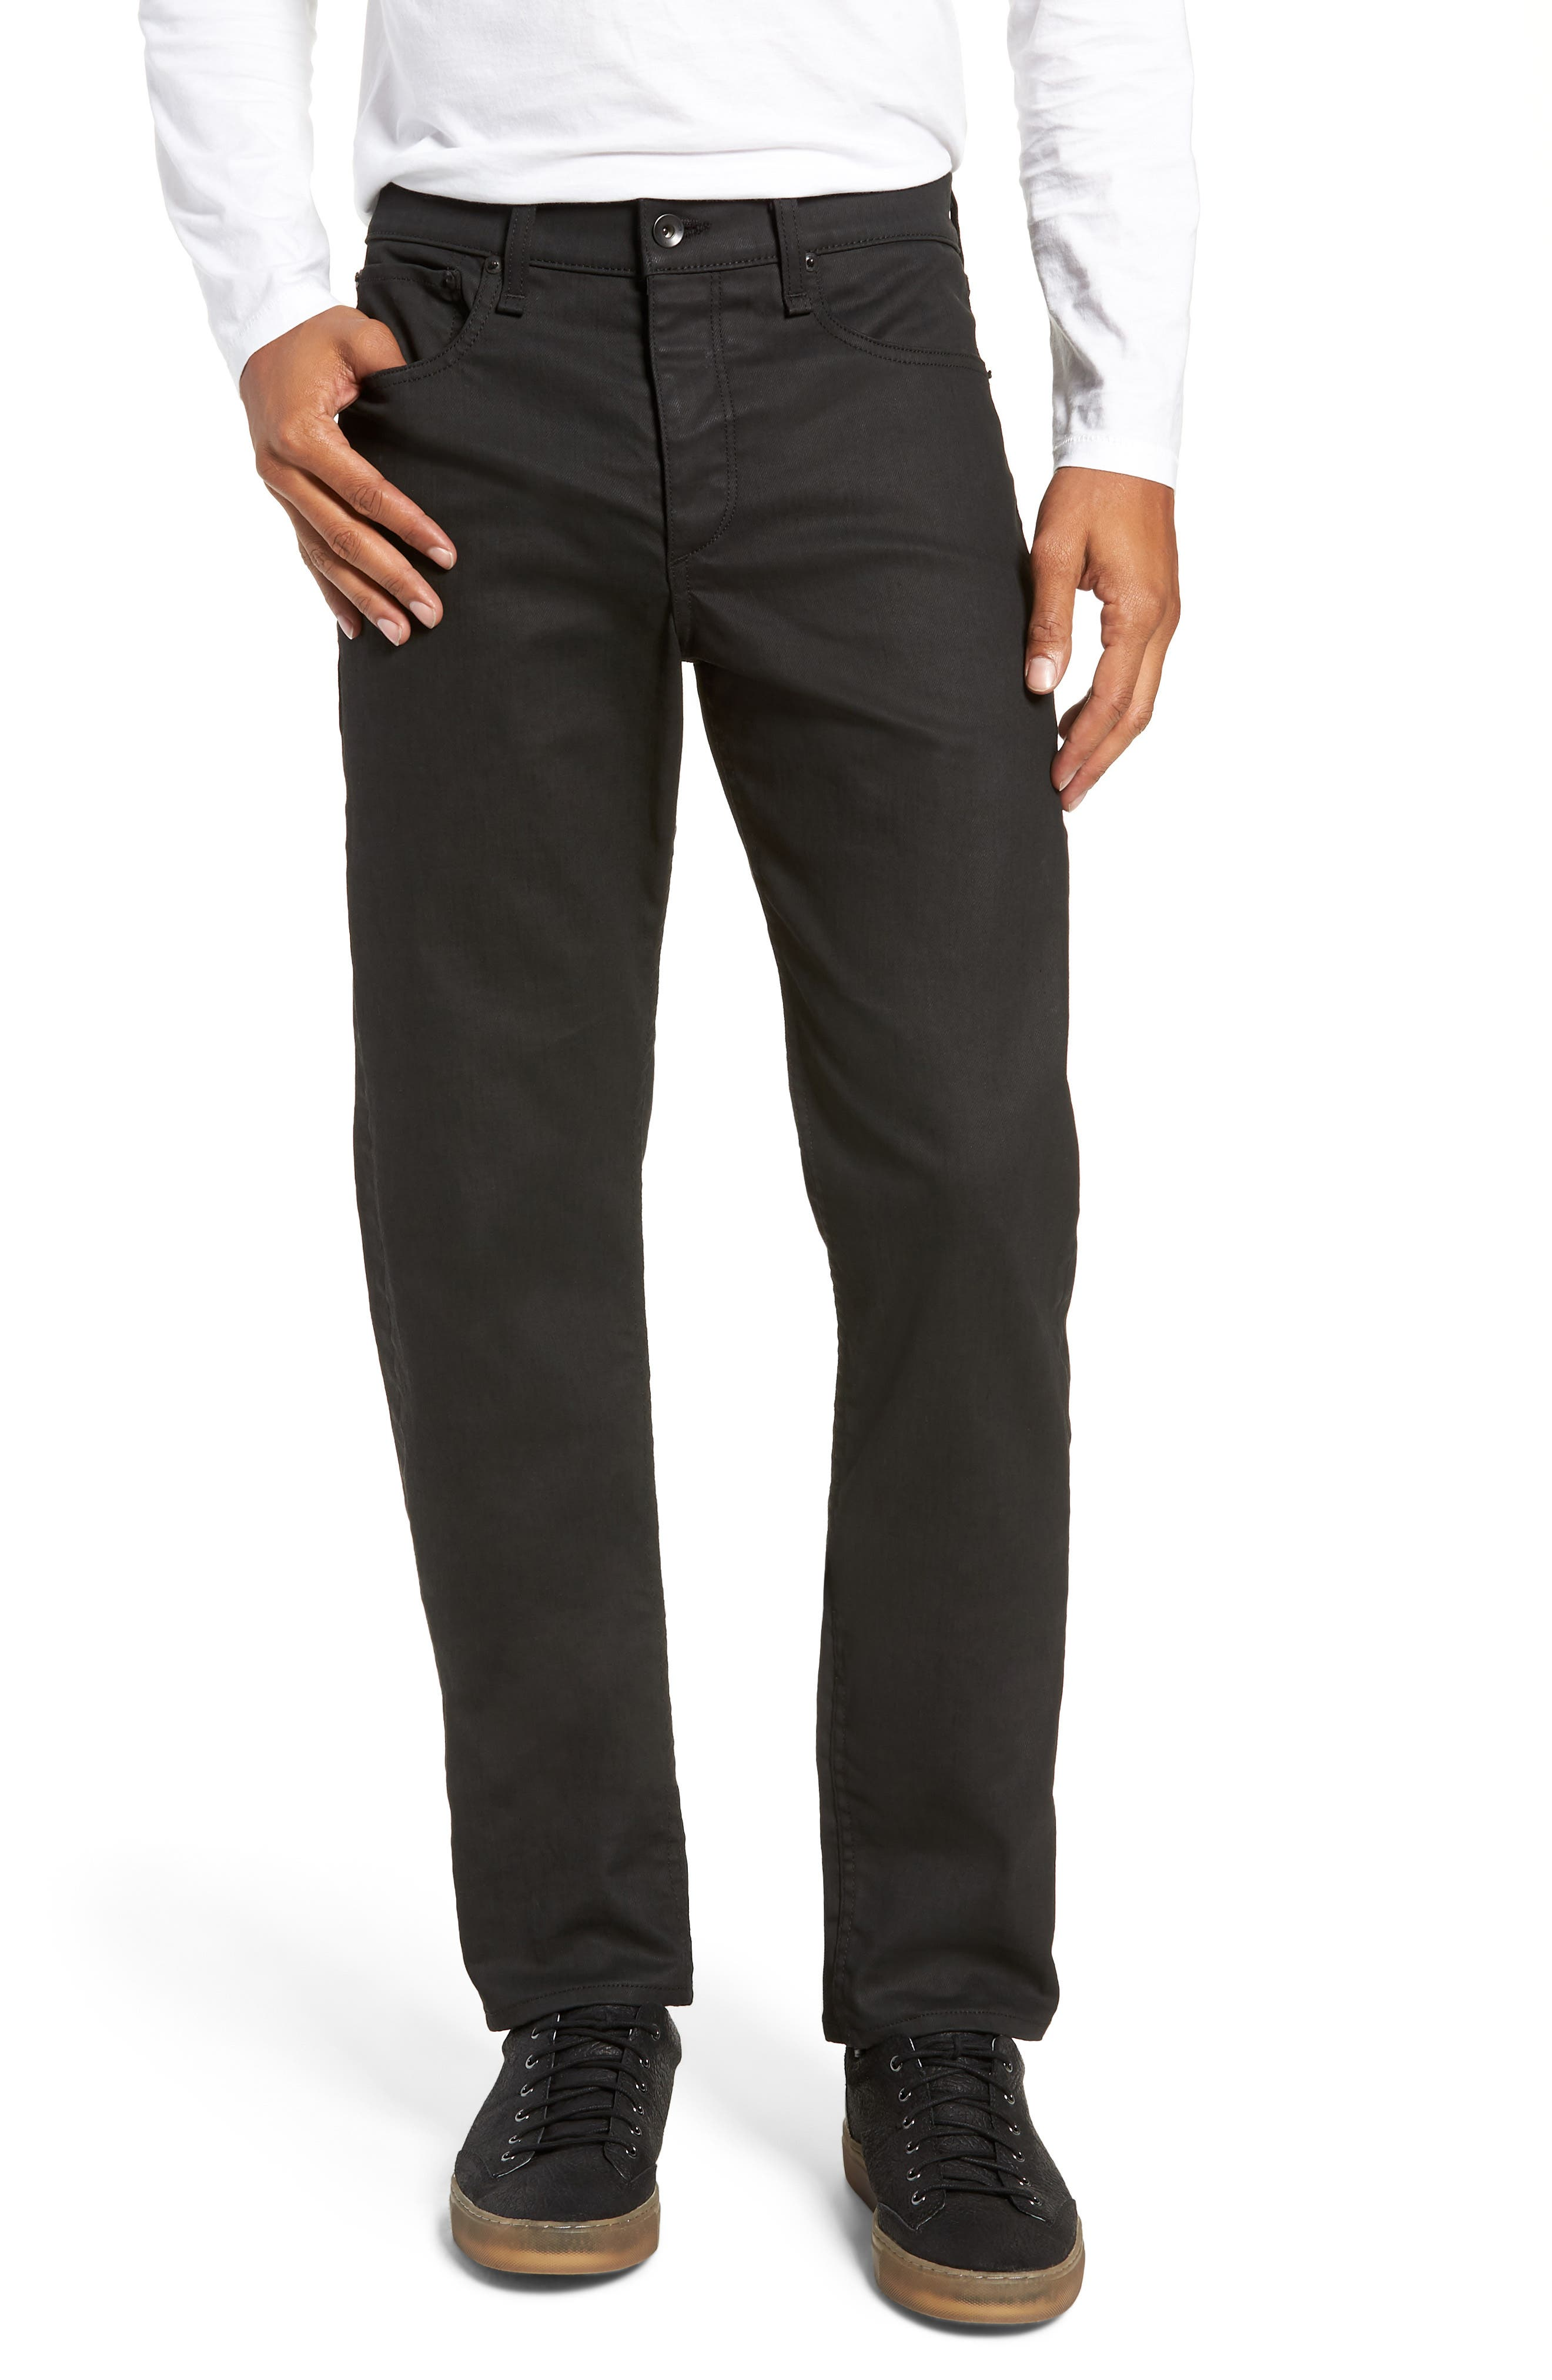 Fit 2 Slim Fit Twill Pants,                         Main,                         color, COATED BLACK